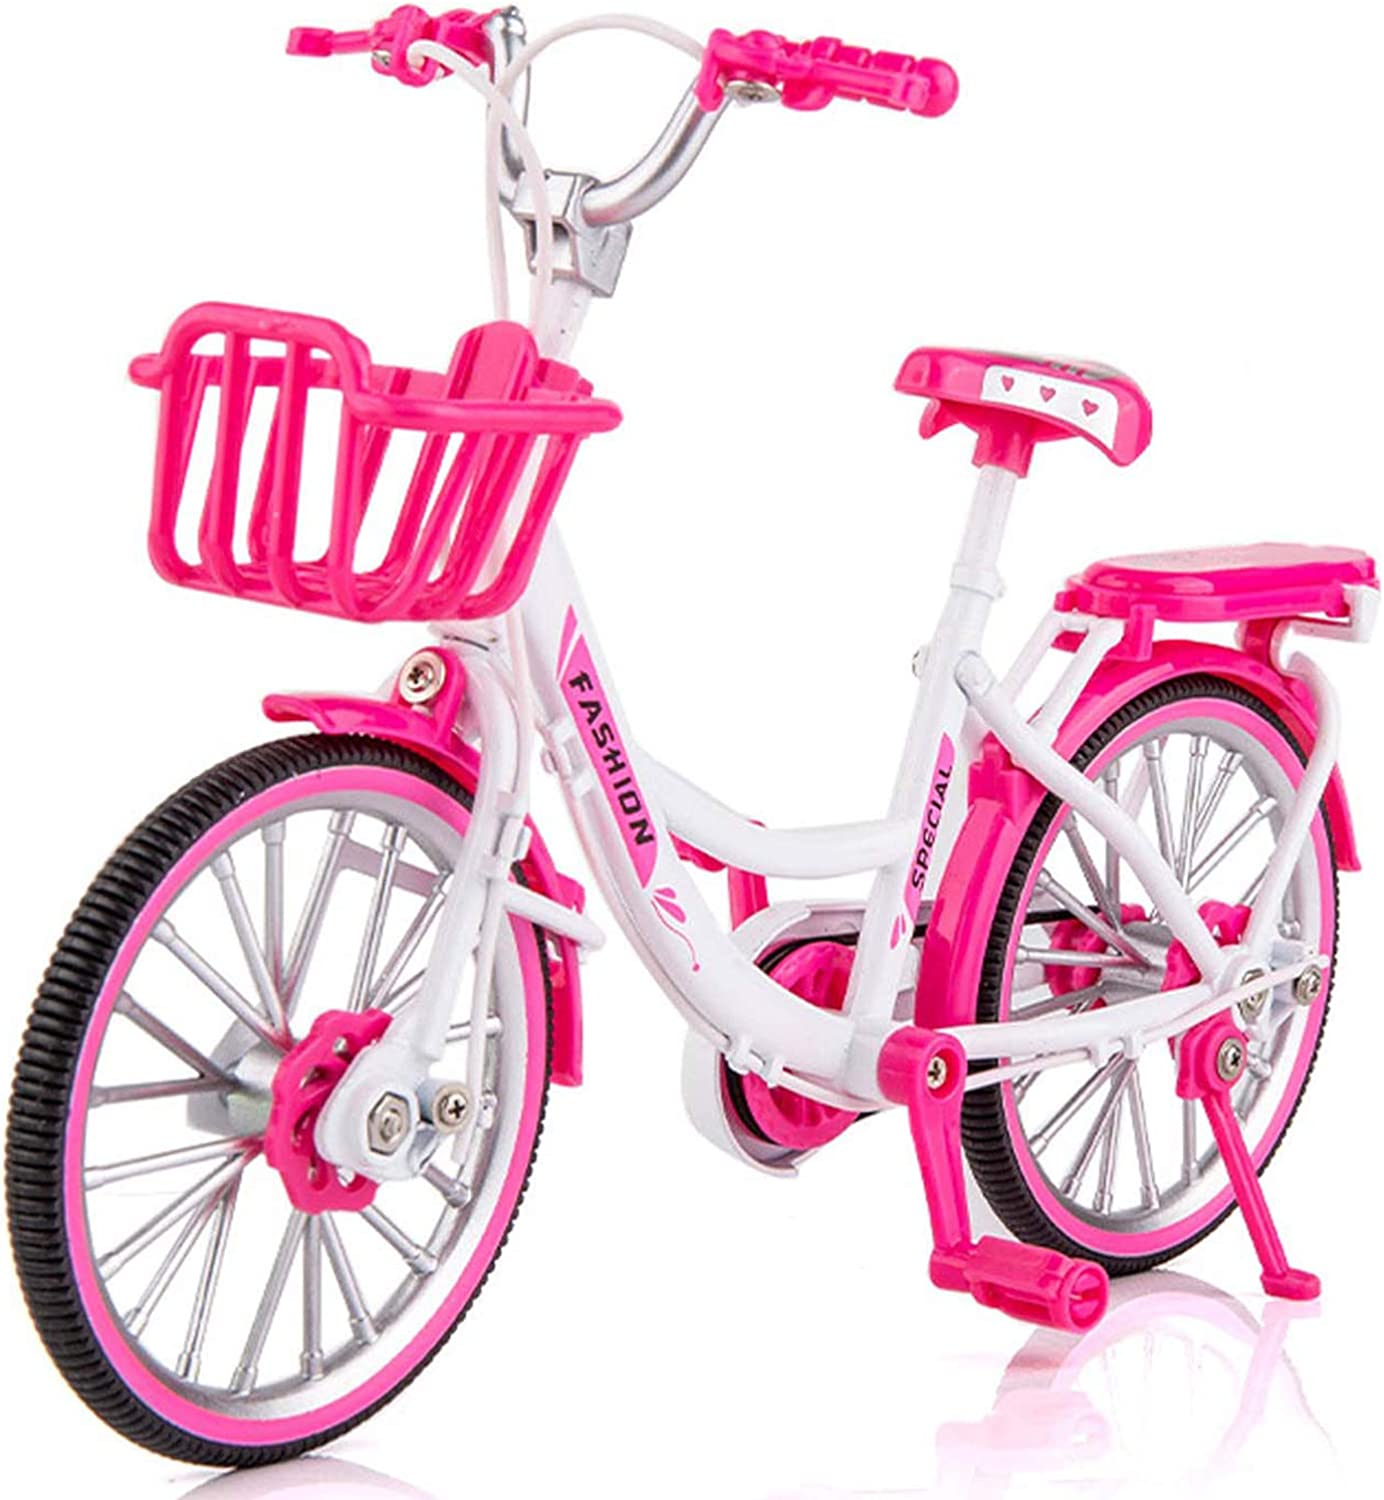 1:10 Simulation Alloy Bicycle Toy Women Limited time cheap sale Very popular Bike Mini Family